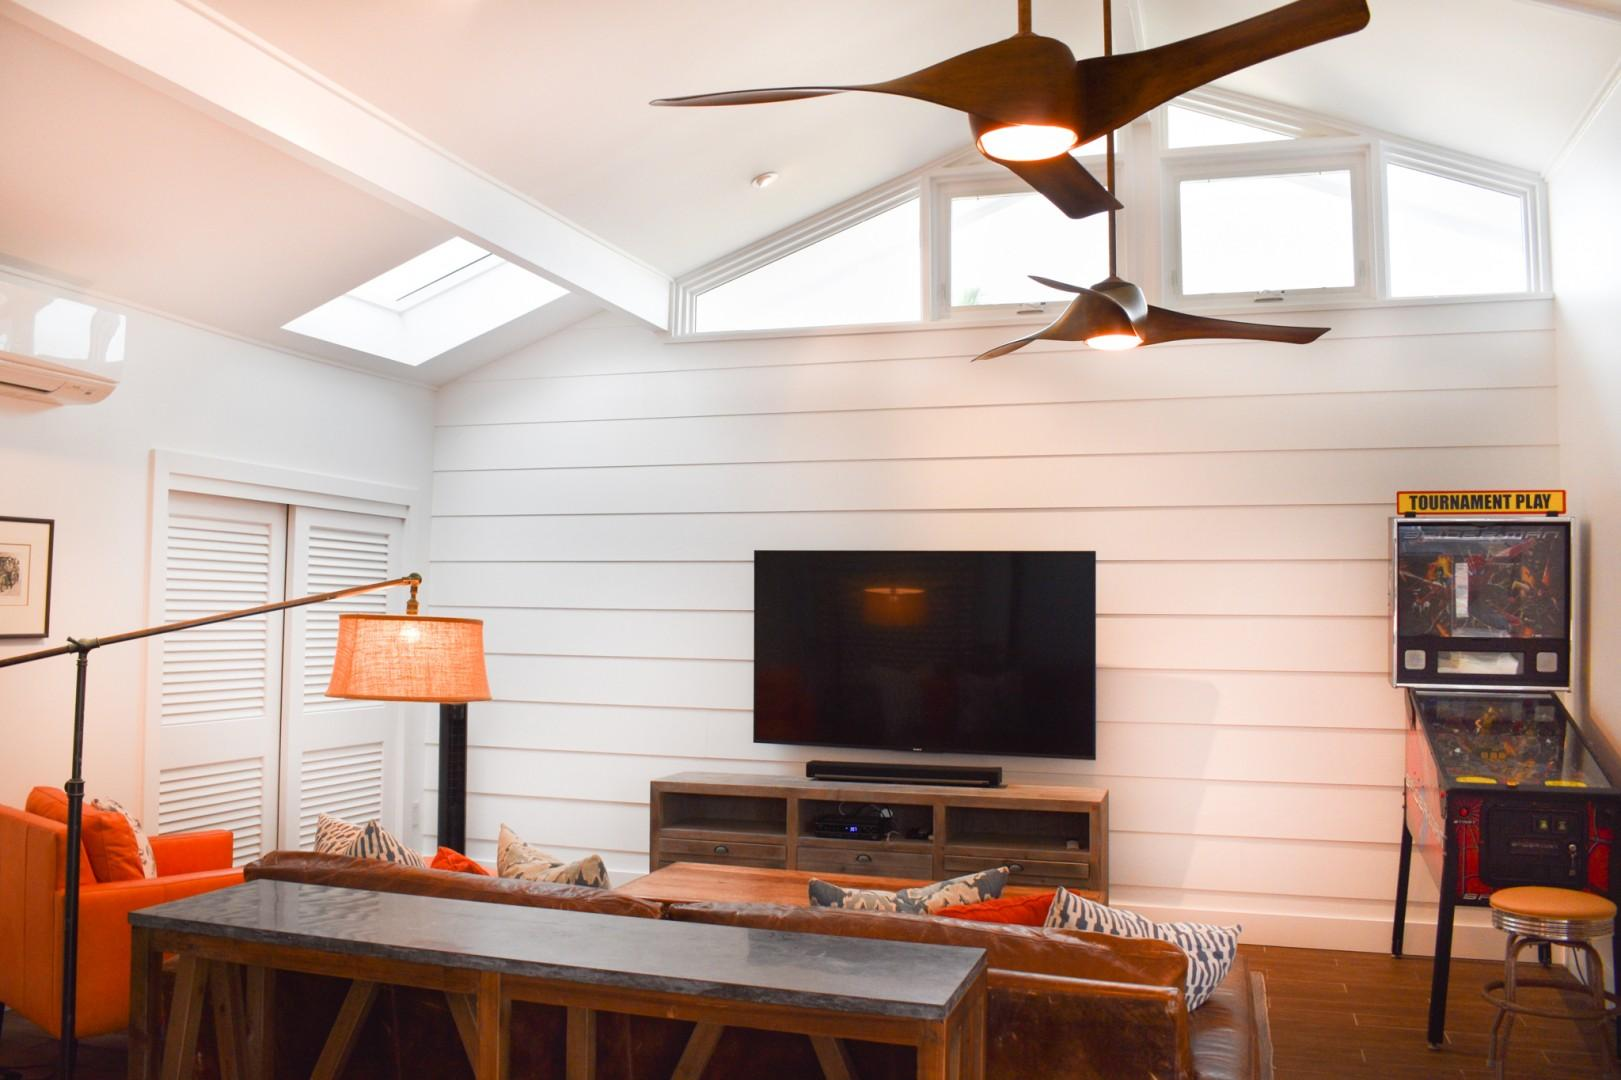 Cottage living/game room with ping pong table and pinball!